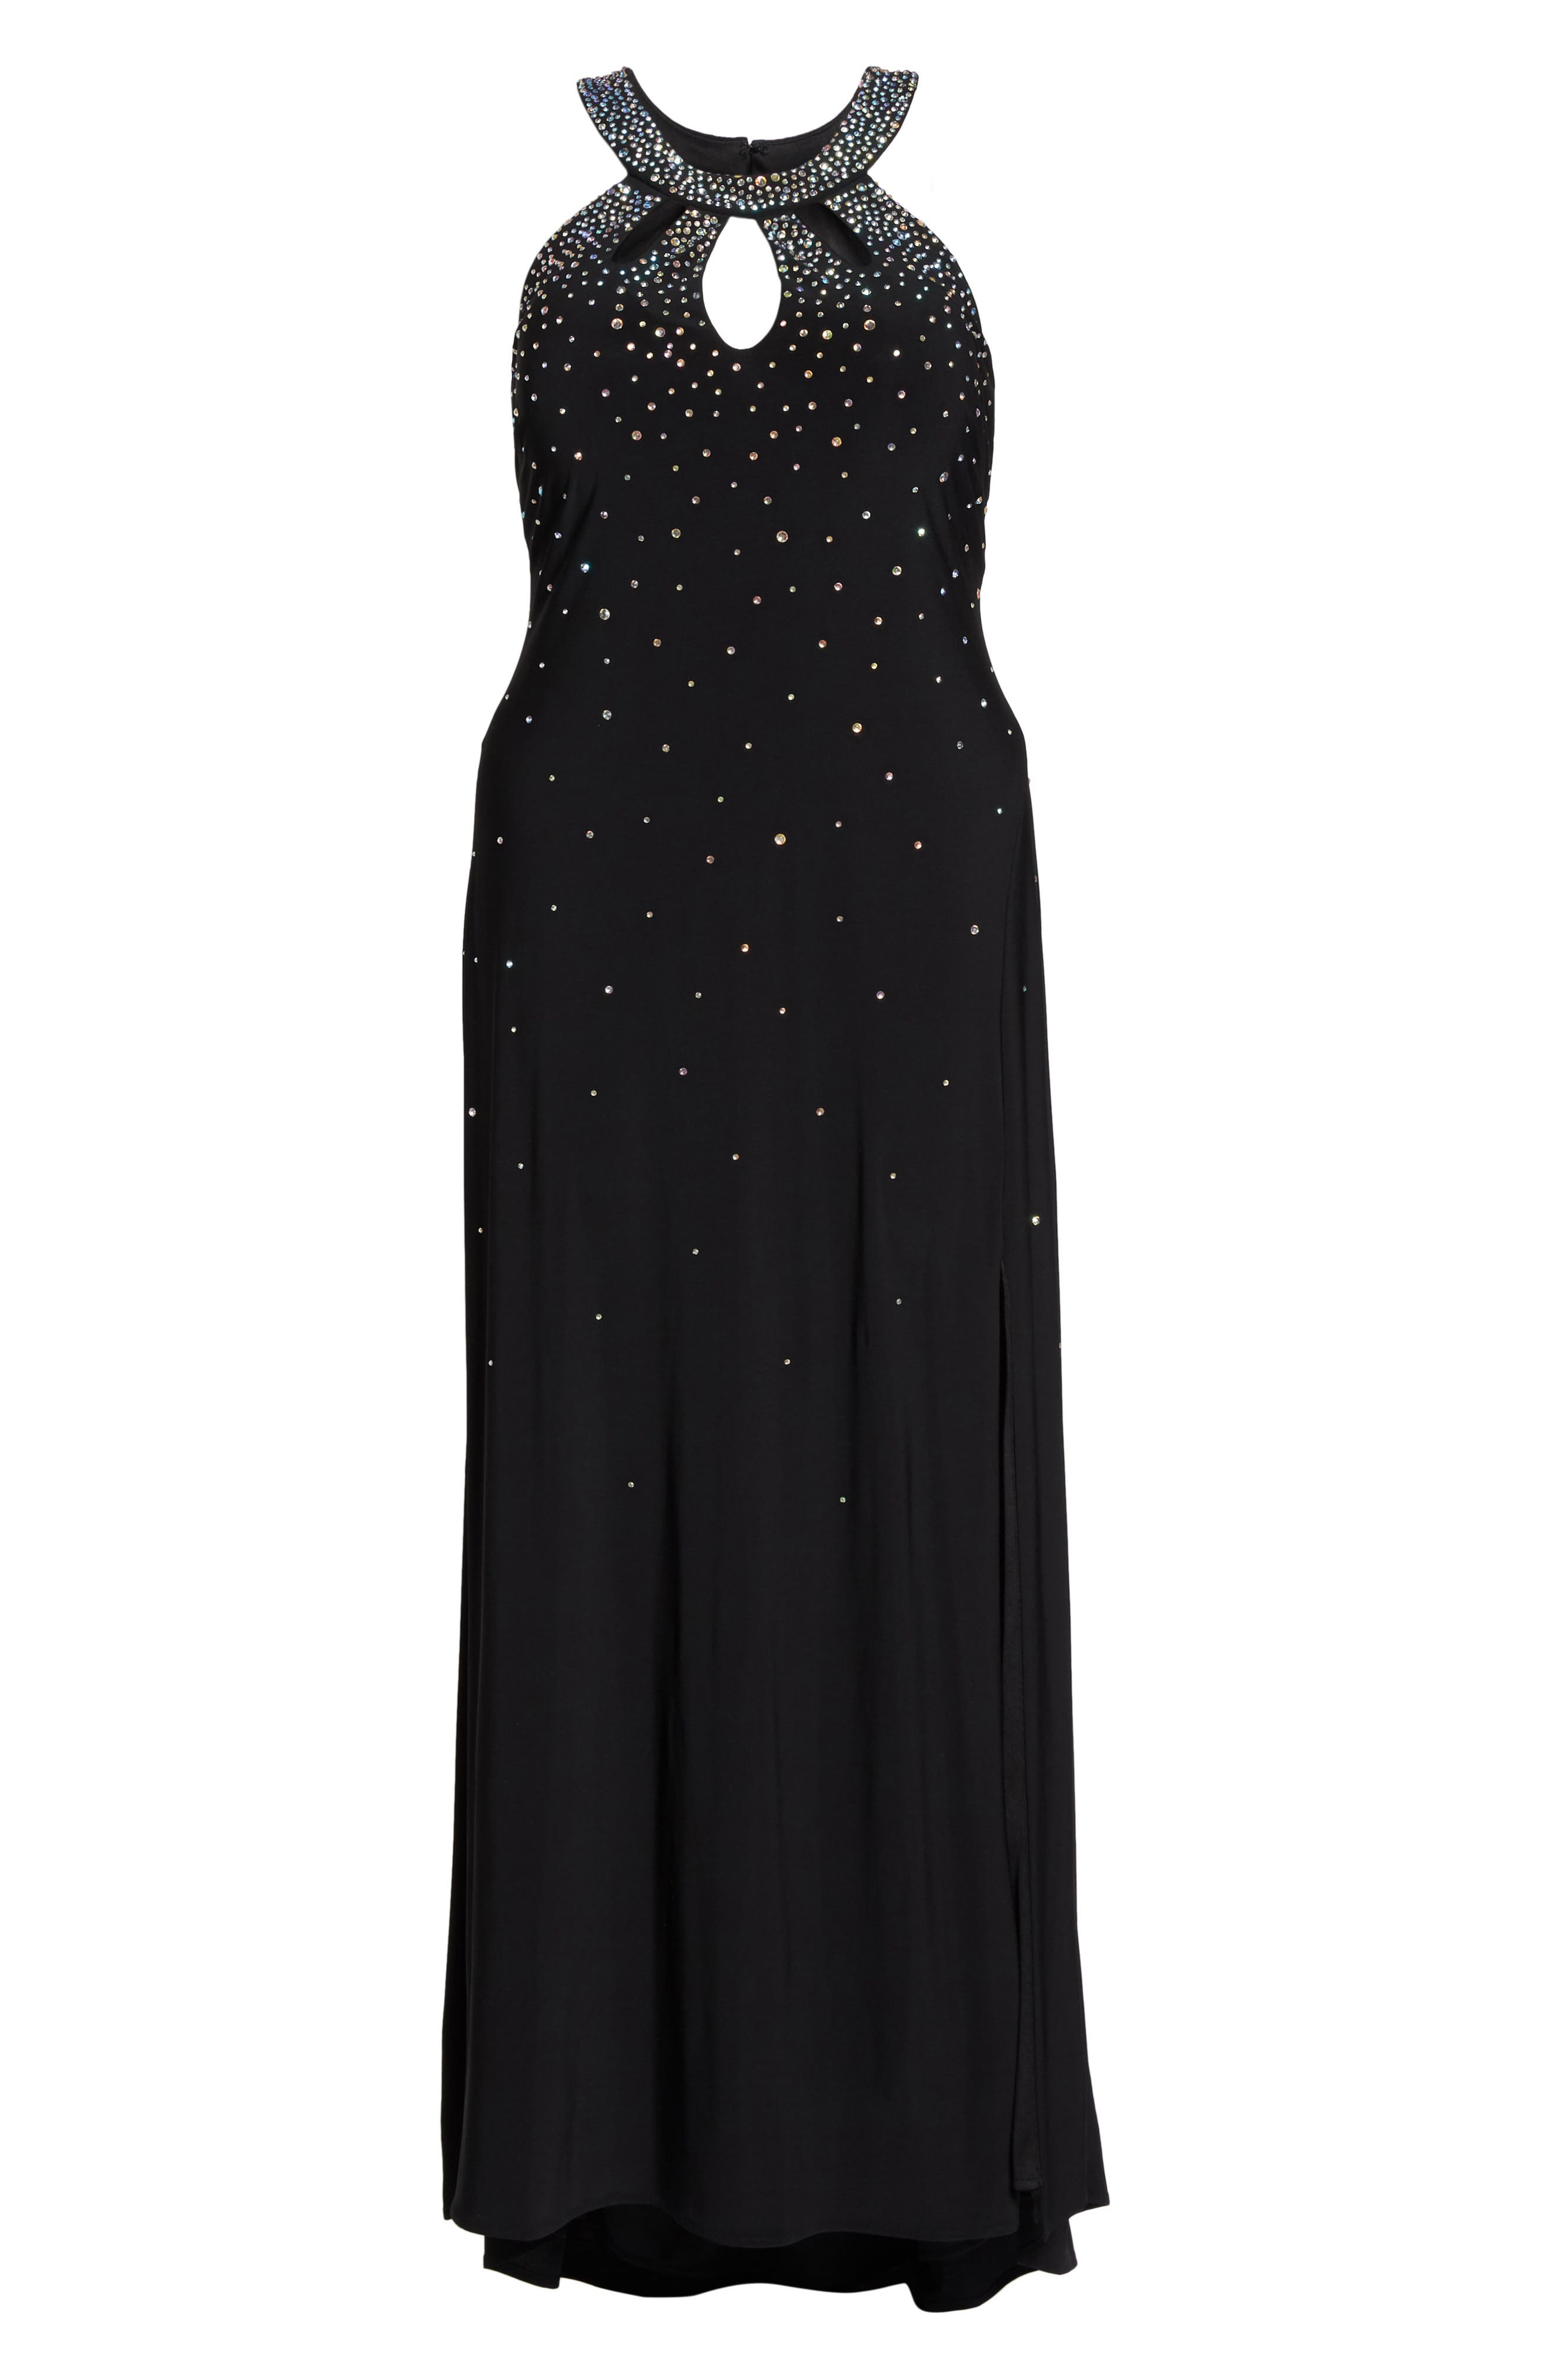 Heat Sealed Stone Knit Gown,                             Alternate thumbnail 6, color,                             Black